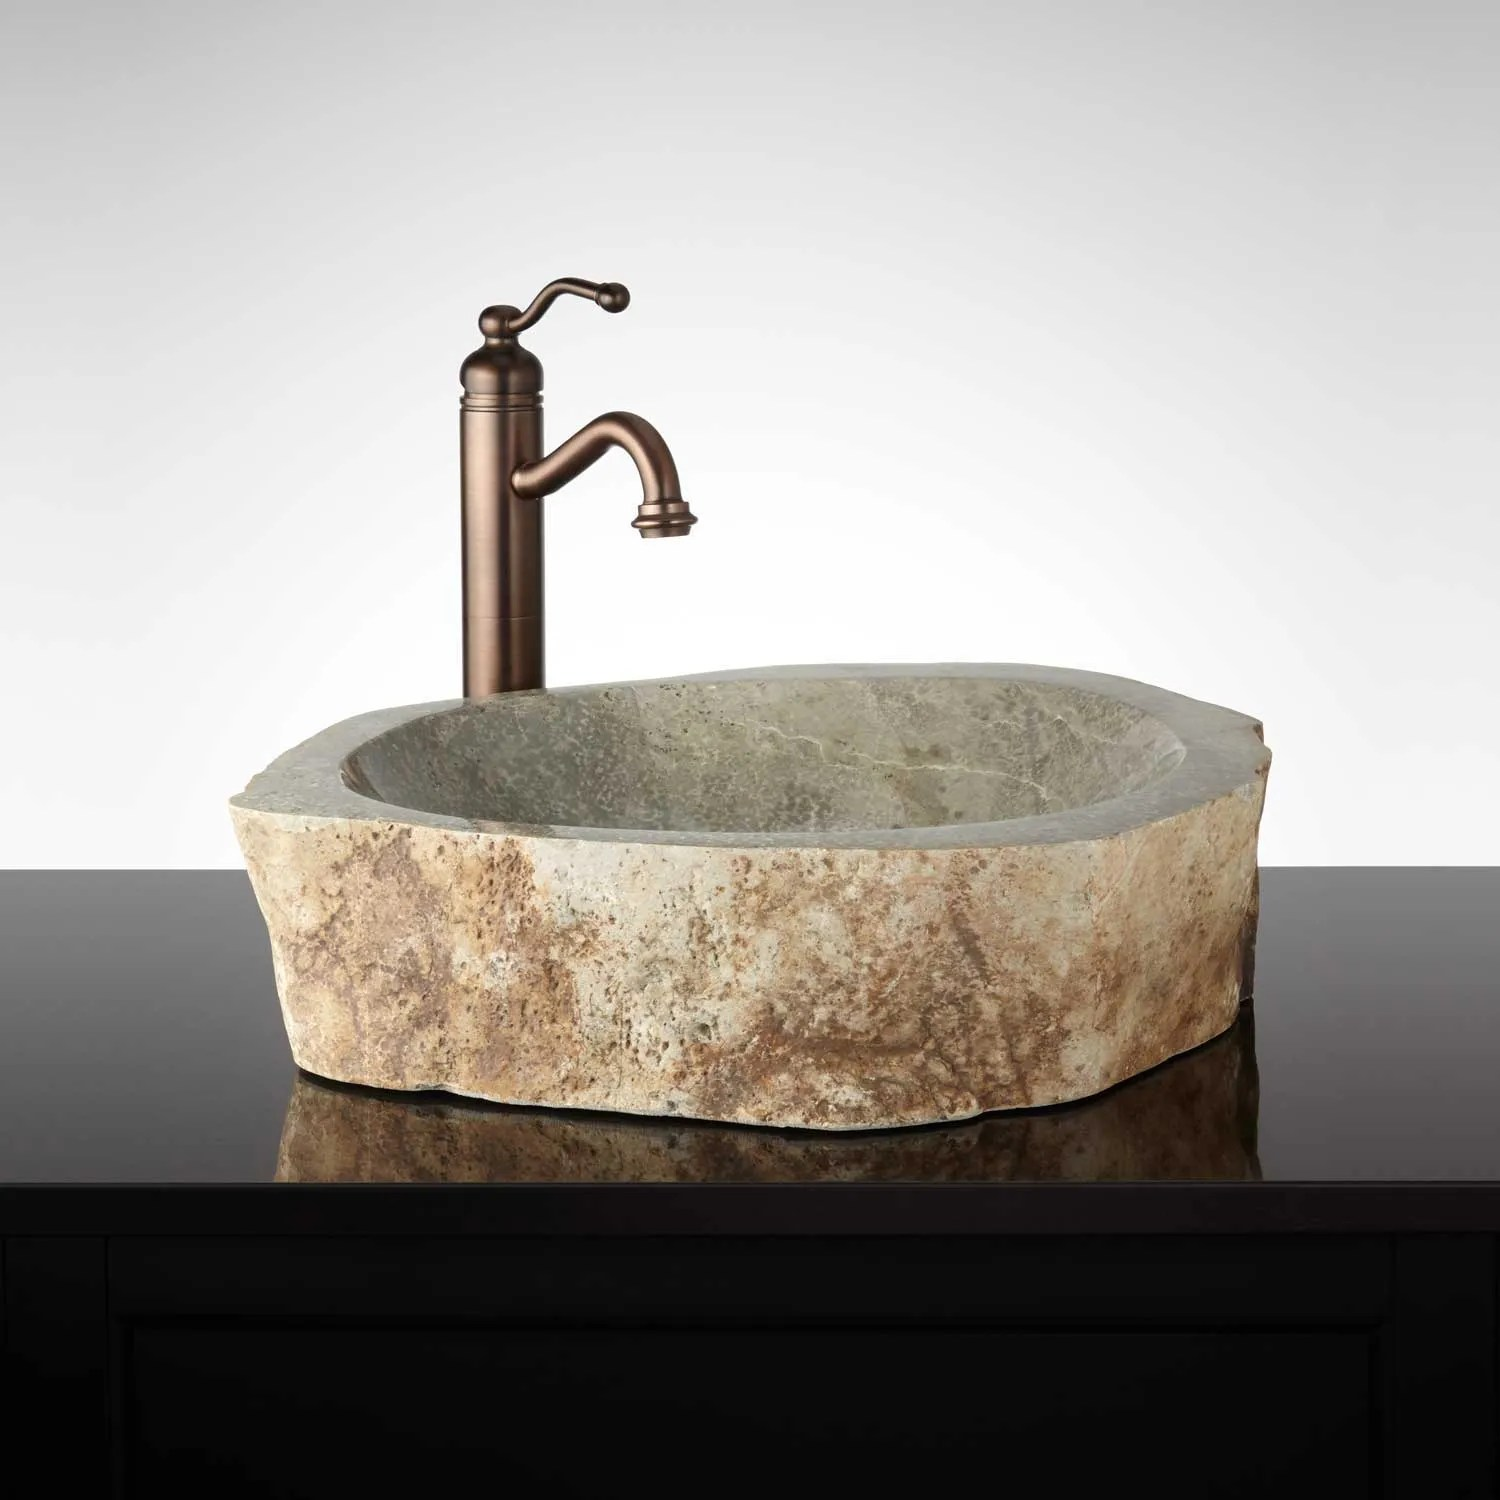 Signature Hardware Offuta Natural Stone Vessel Sink  eBay